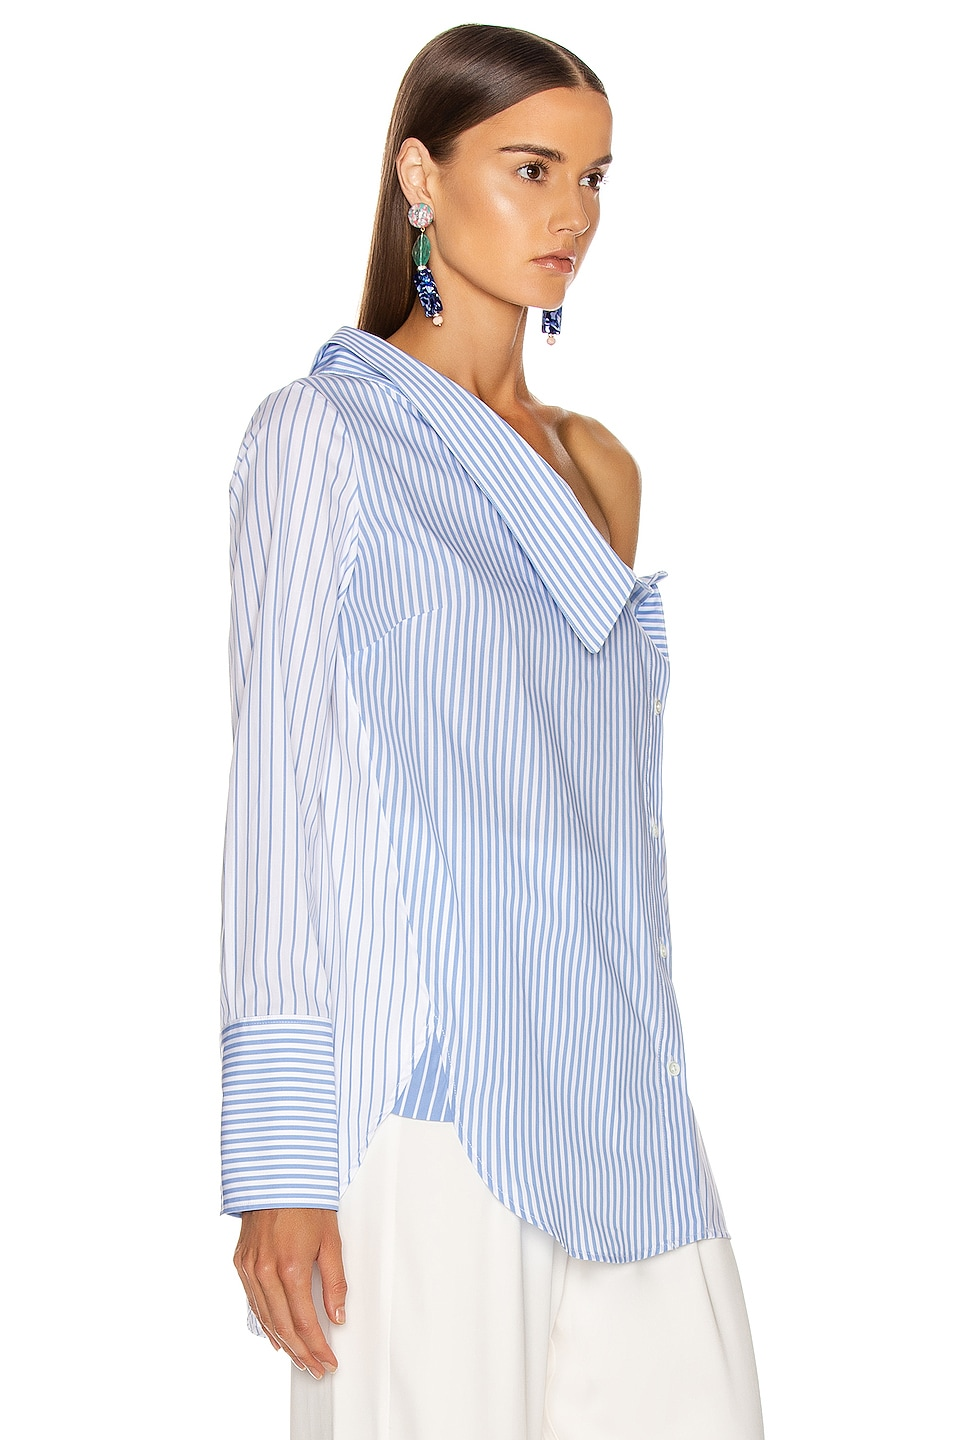 Image 2 of Monse Asymmetrical Flap Collar Shirt in Sky Blue & White